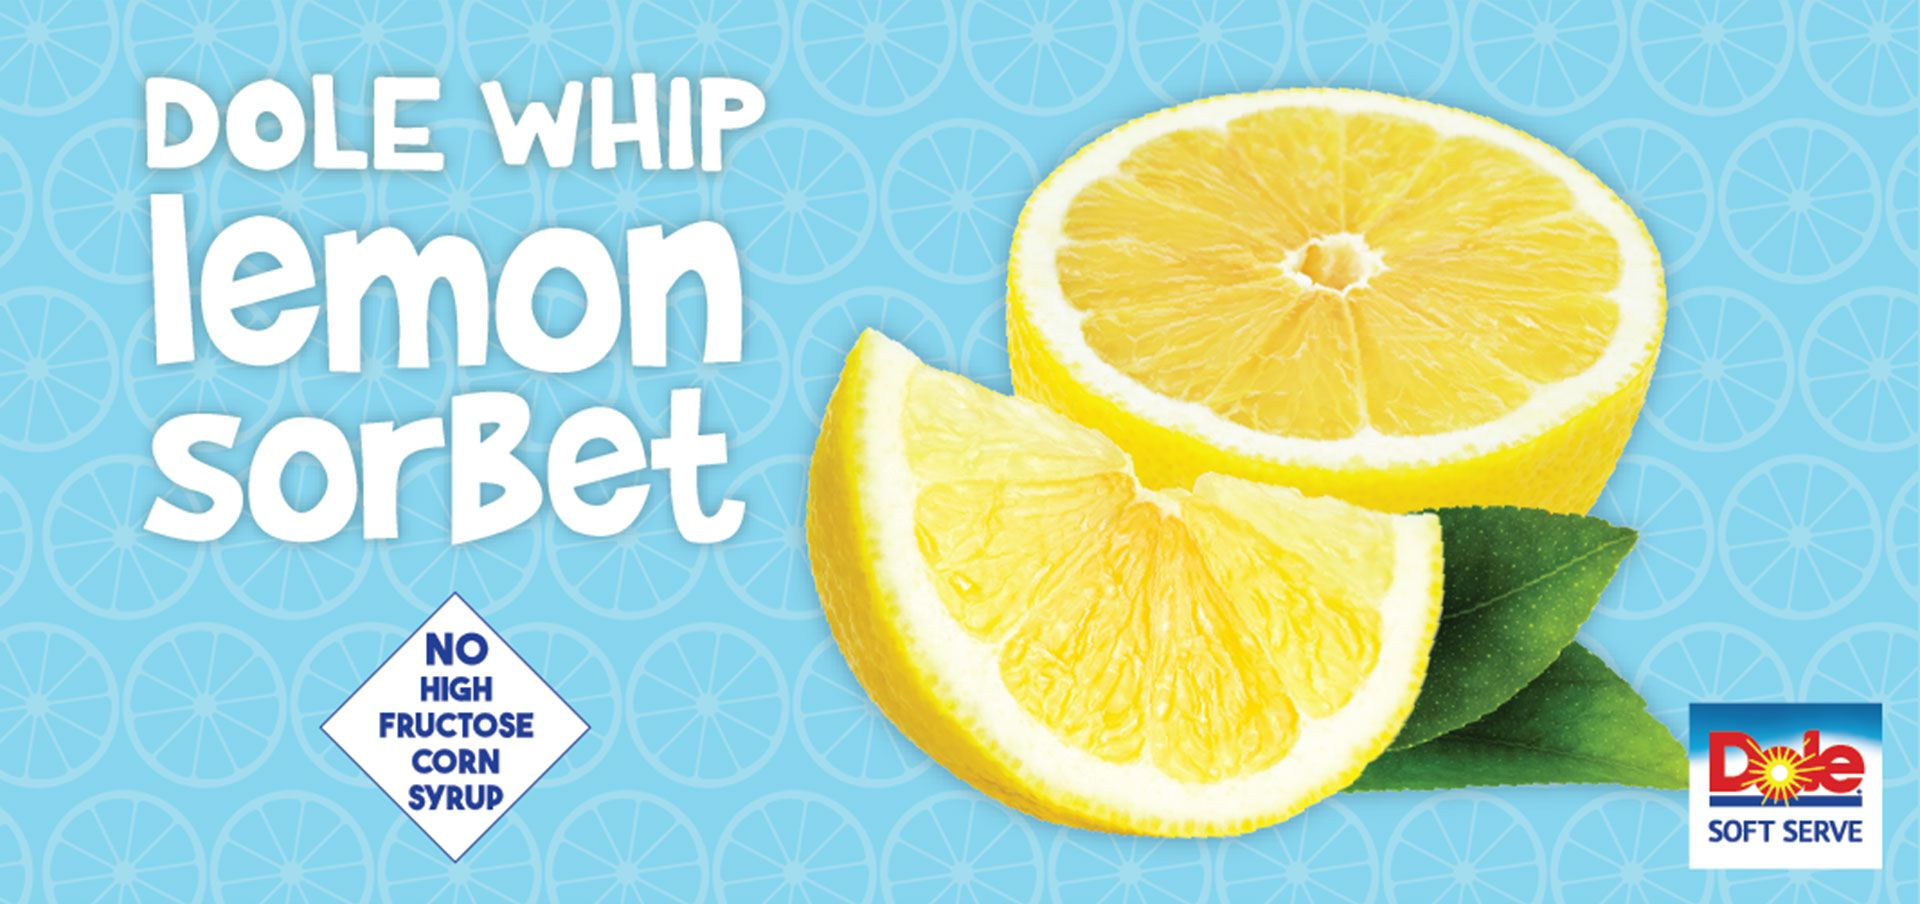 dole® whip lemon sorbet label image